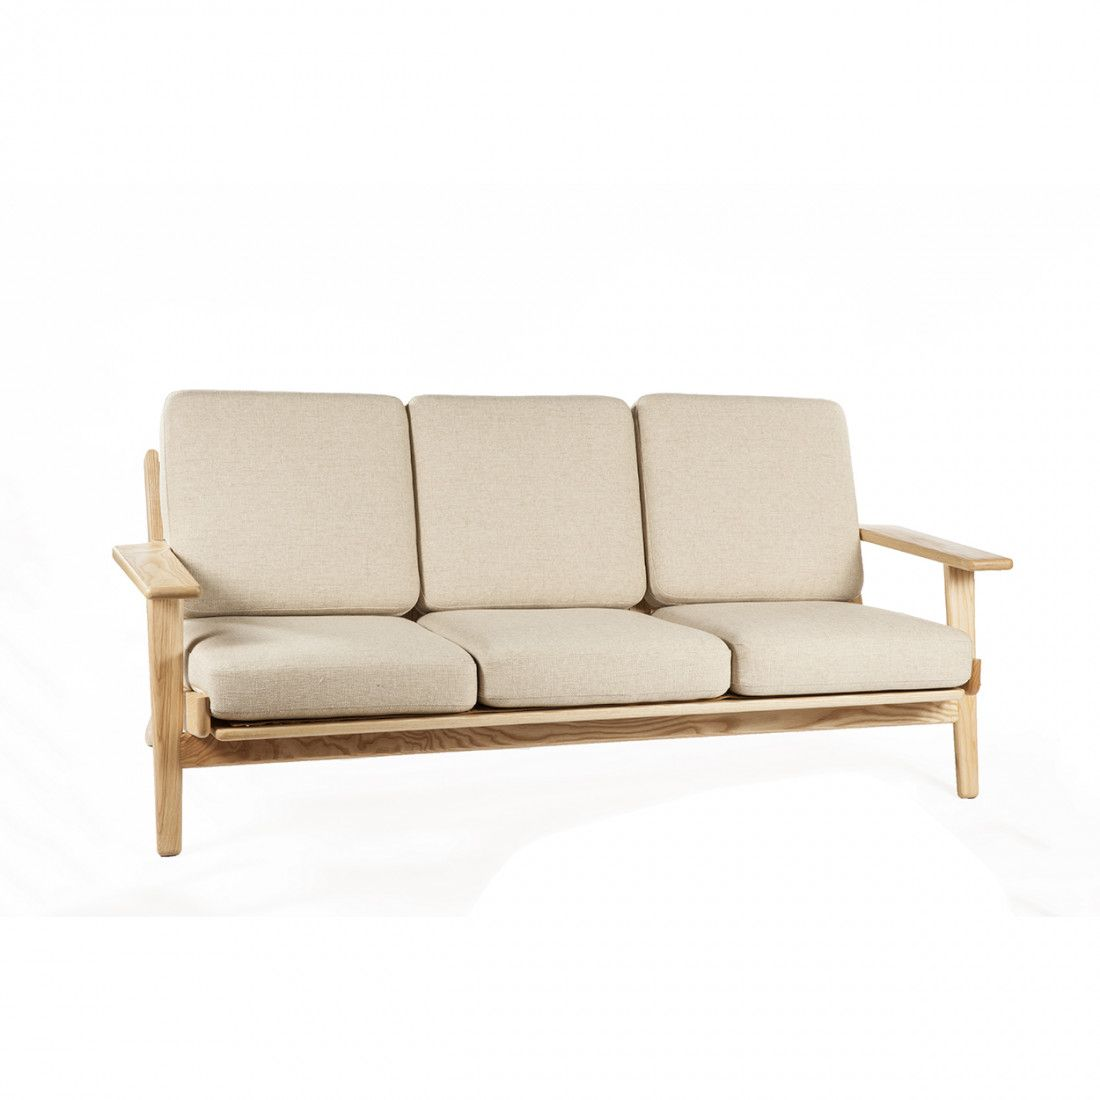 Hans Wegner Sofa Replica Mid Century Modern Reproduction Ge 290 Plank Sofa Beige Inspired